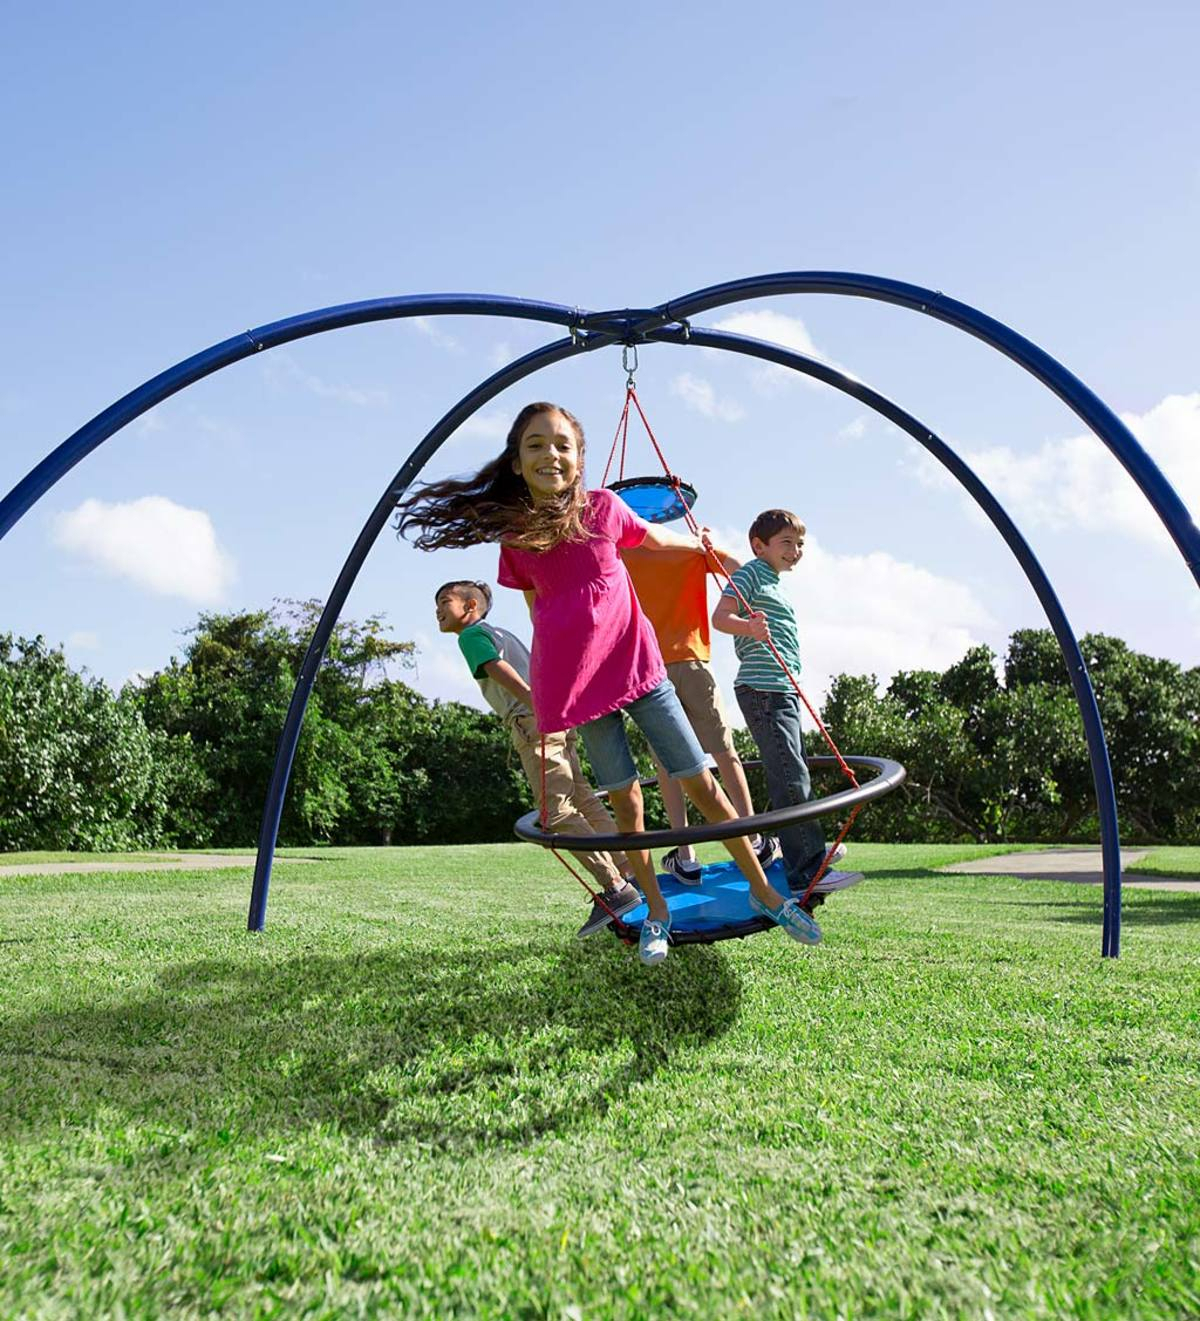 Vortex Spinning Ring Swing And Sky Dome Arched Stand Special With Regard To Dual Rider Glider Swings With Soft Touch Rope (View 25 of 25)